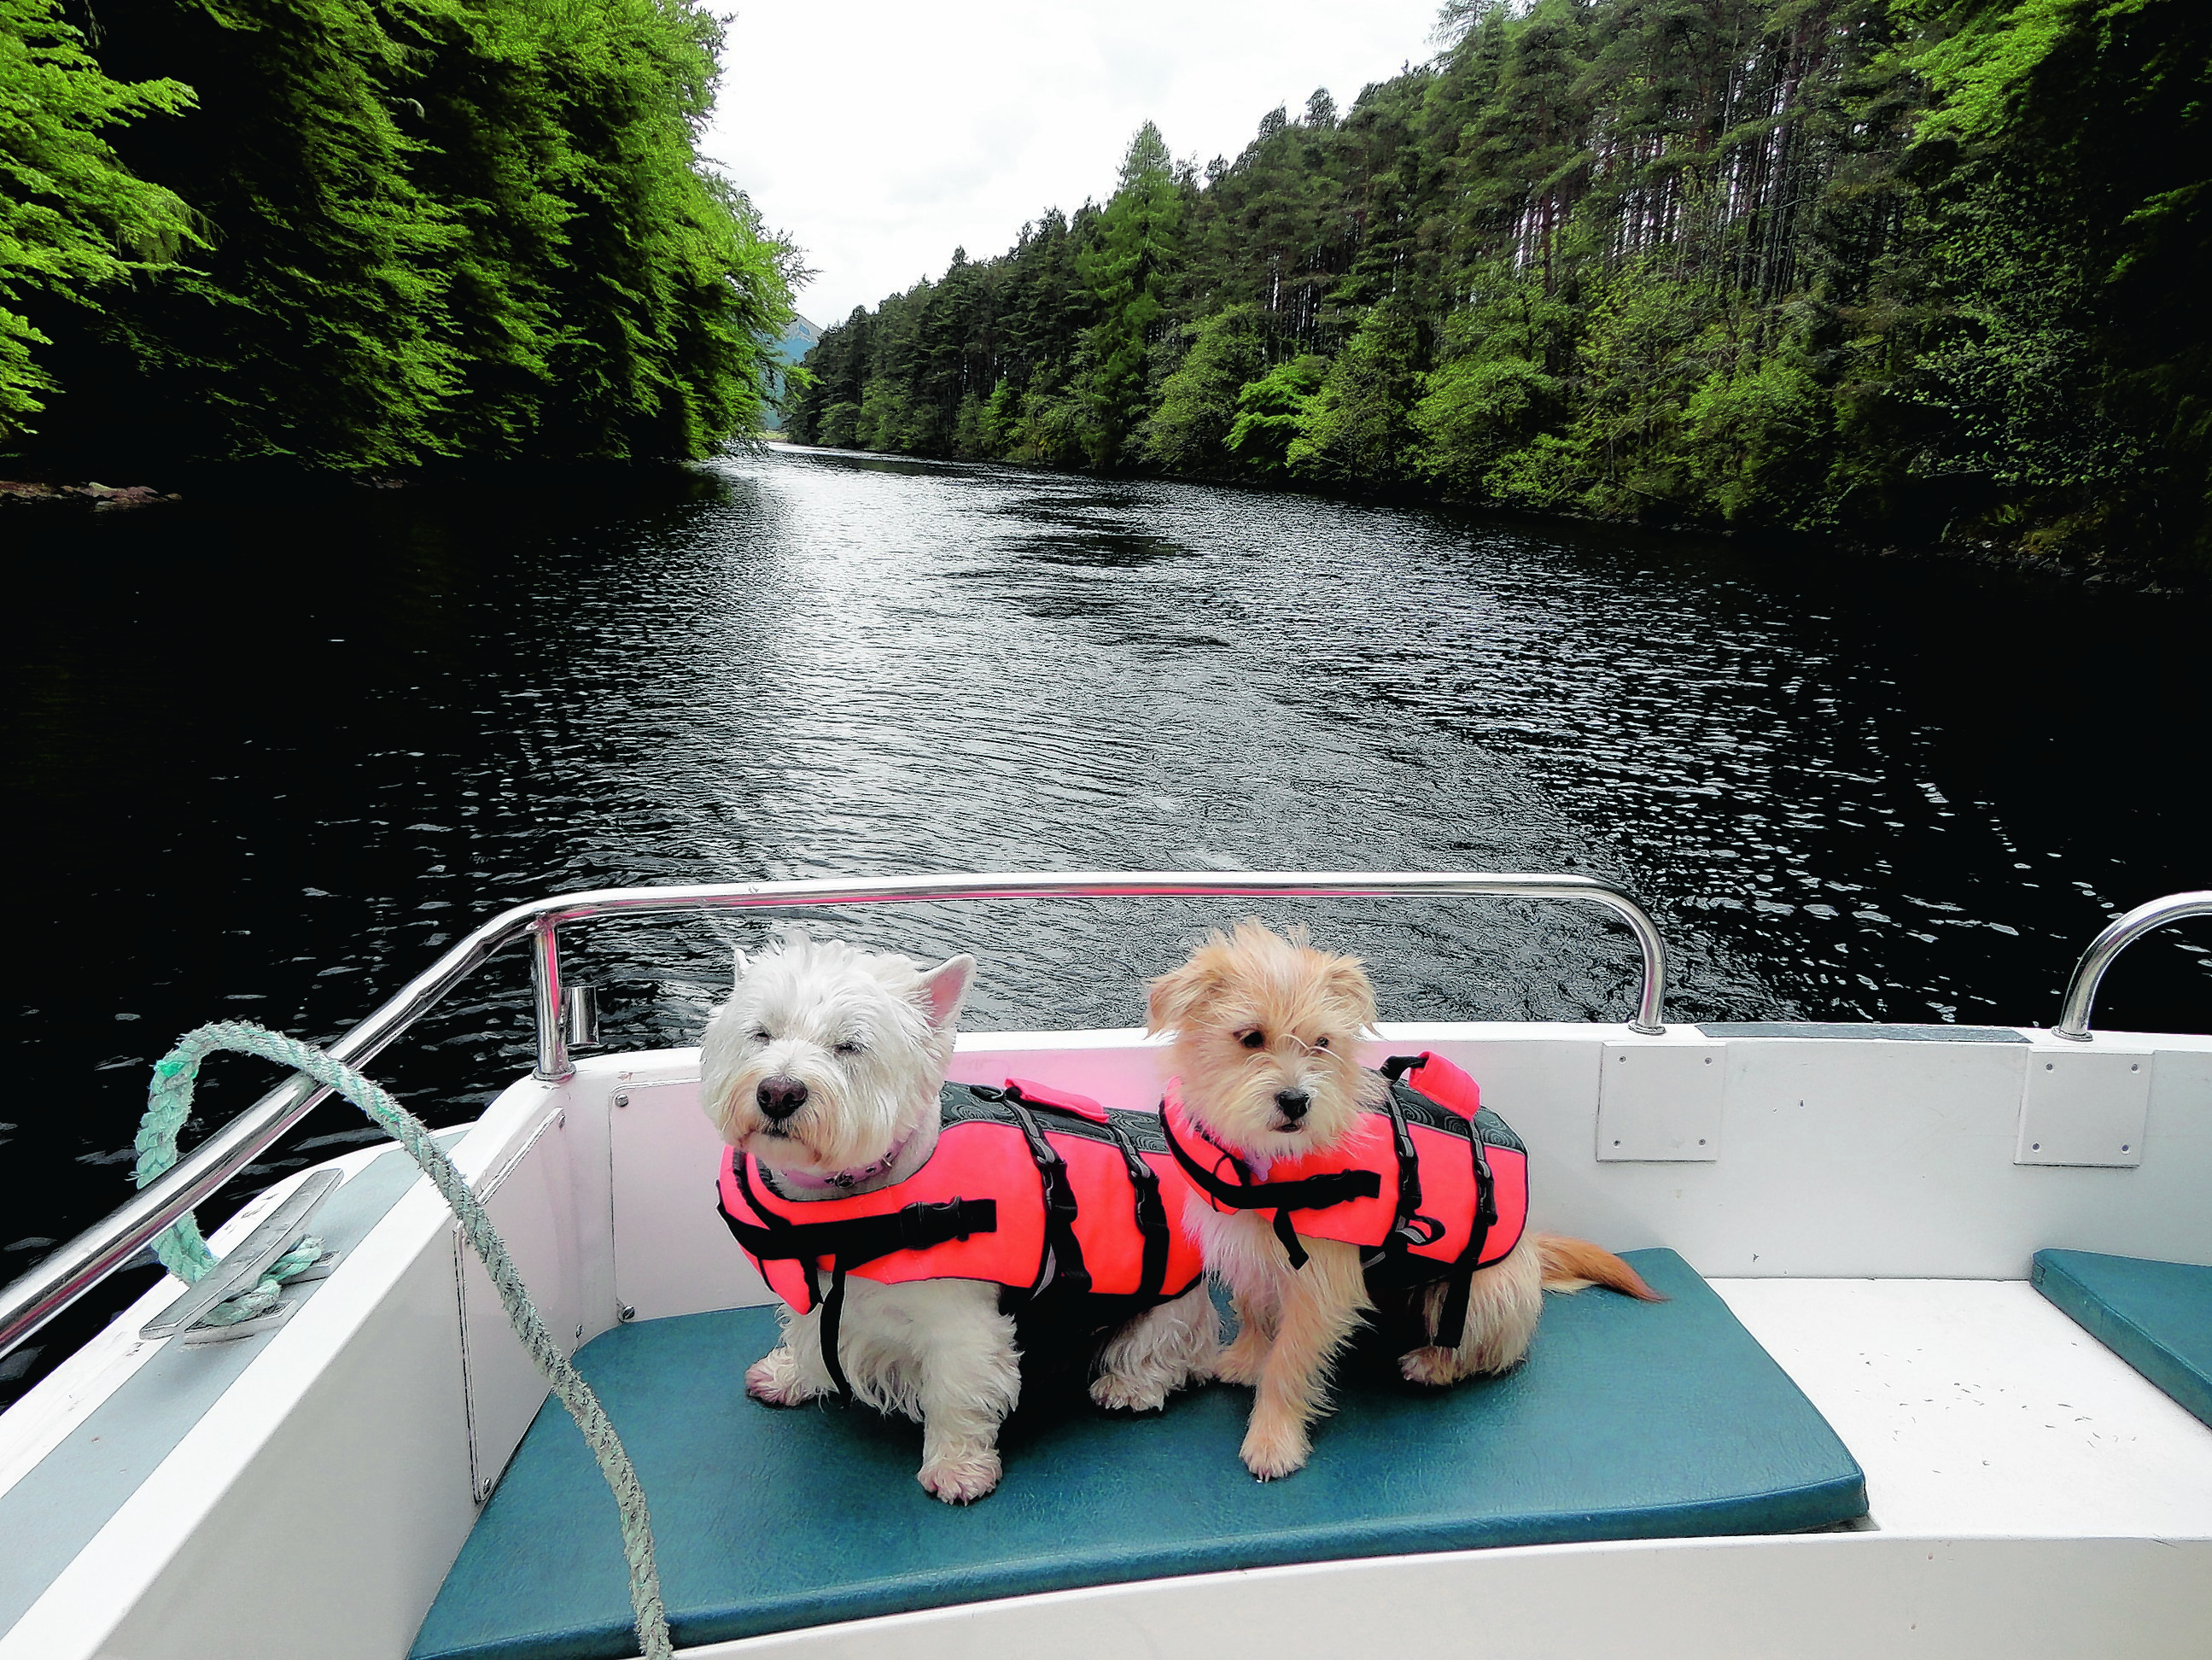 Lucy the 12-year-old westie and Cally, an 18-month-old lhapso/jack cross, on holiday on the Caledonian Canal. This photograph was taken at Laggan Avenue en route to Fort Augustus. The pair live with Brian and Wendy Kerr in Forres. They are our winners this week.